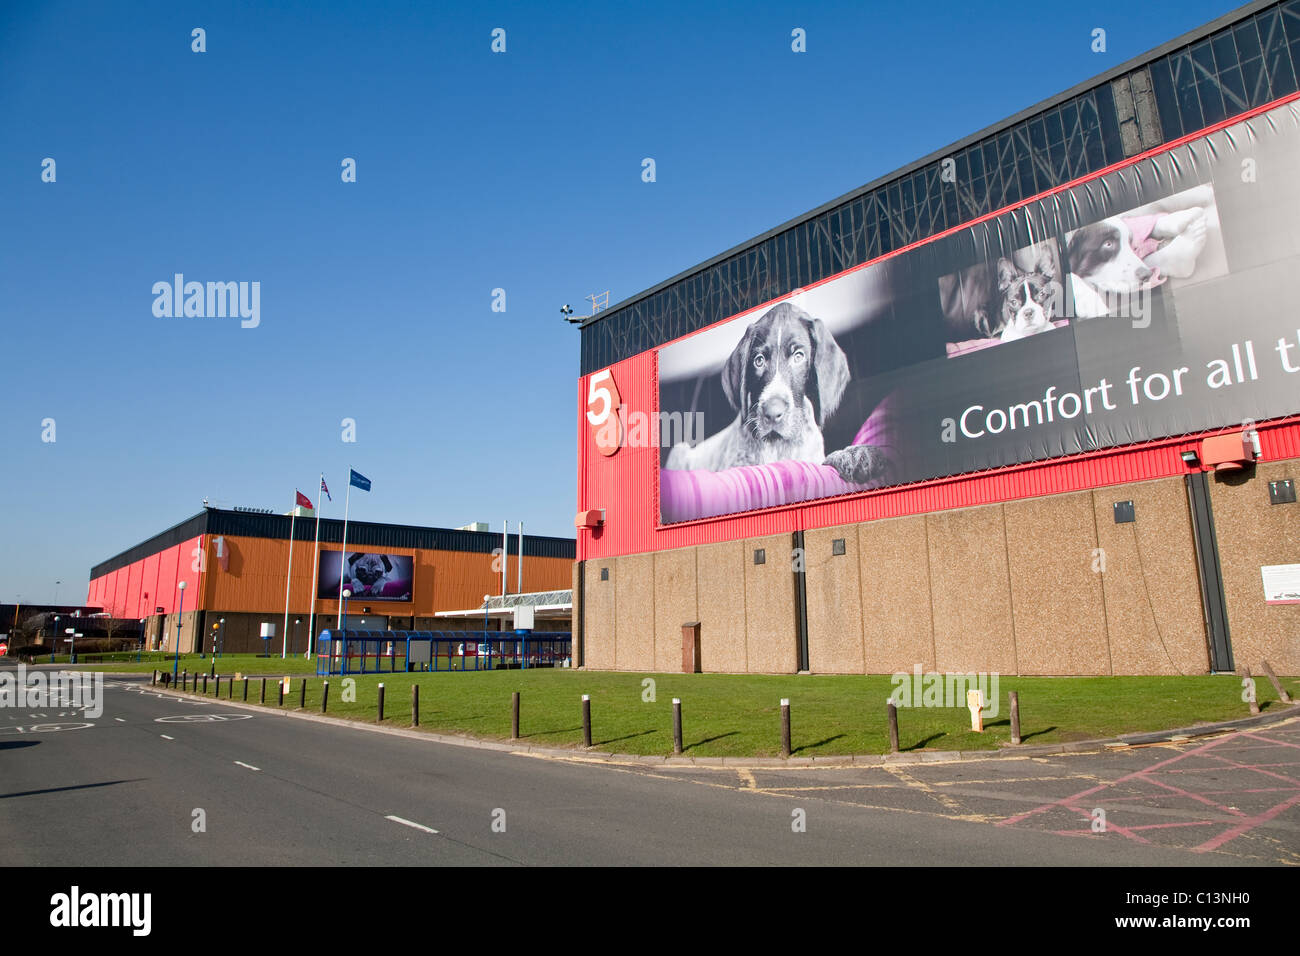 Crufts Exhibition Hall at the NEC, Birmingham - Stock Image